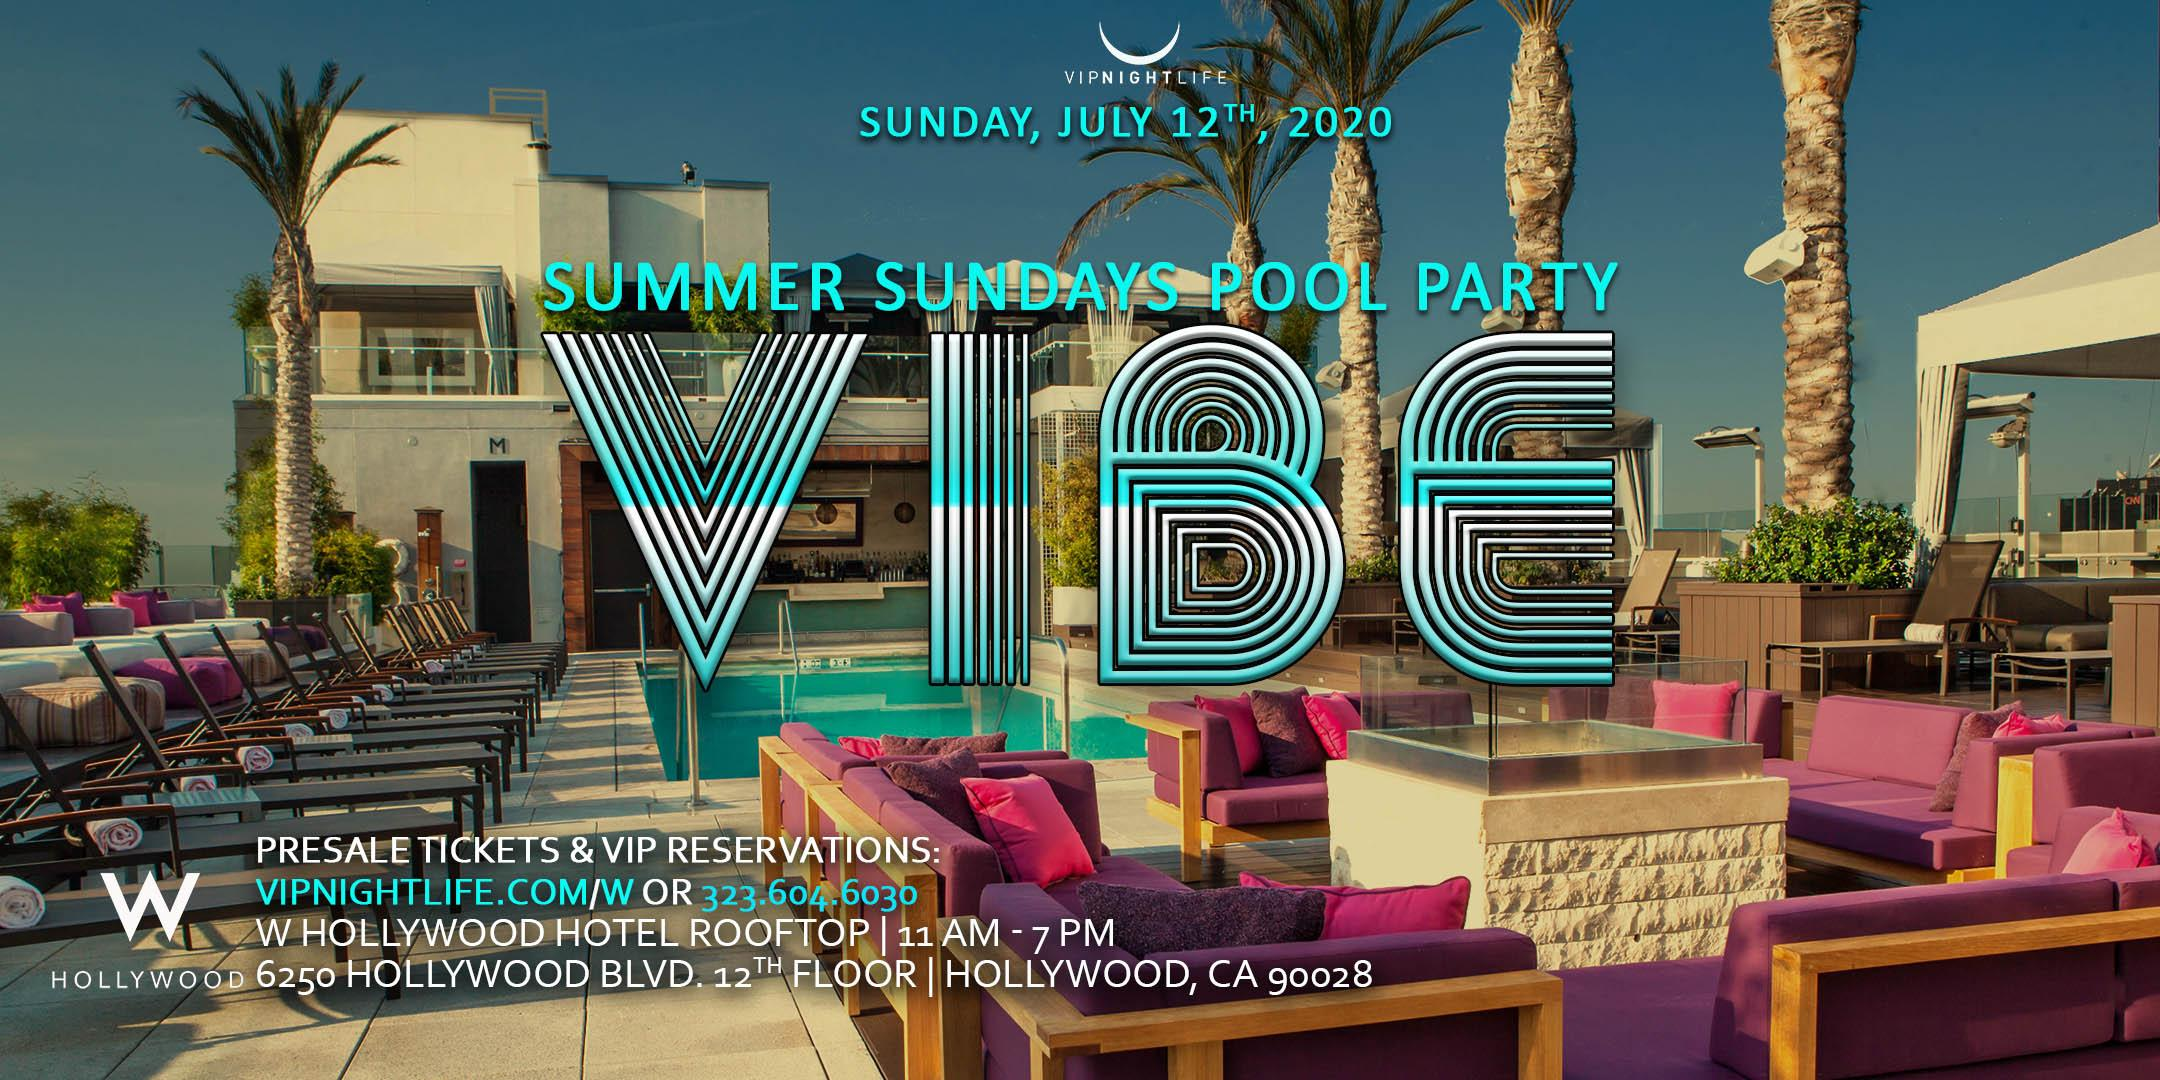 VIBE W Hollywood Rooftop - Summer Sundays Pool Party